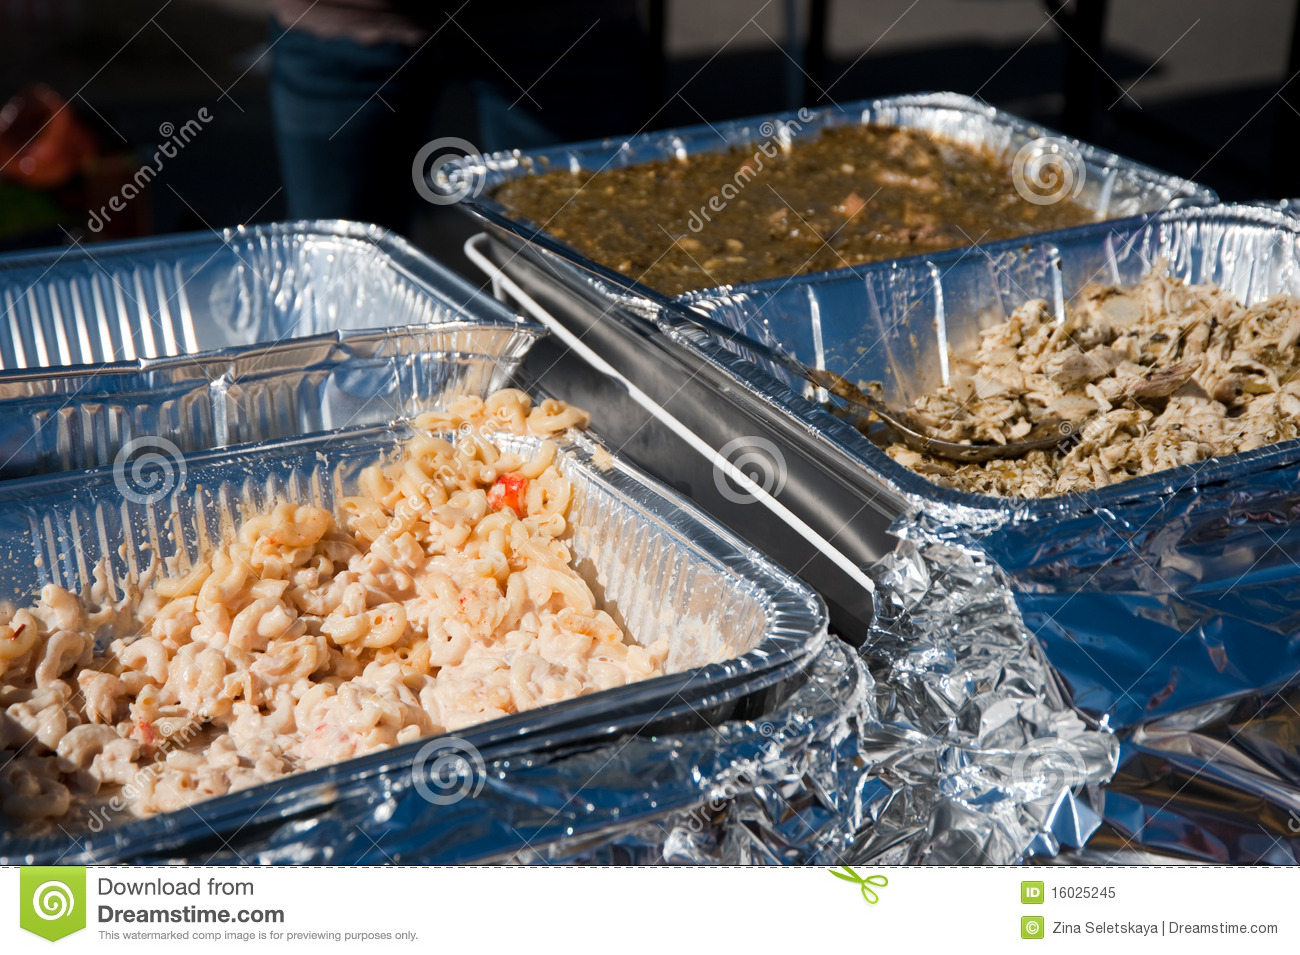 Banquet Food Royalty Free Stock Photo   Image  16025245